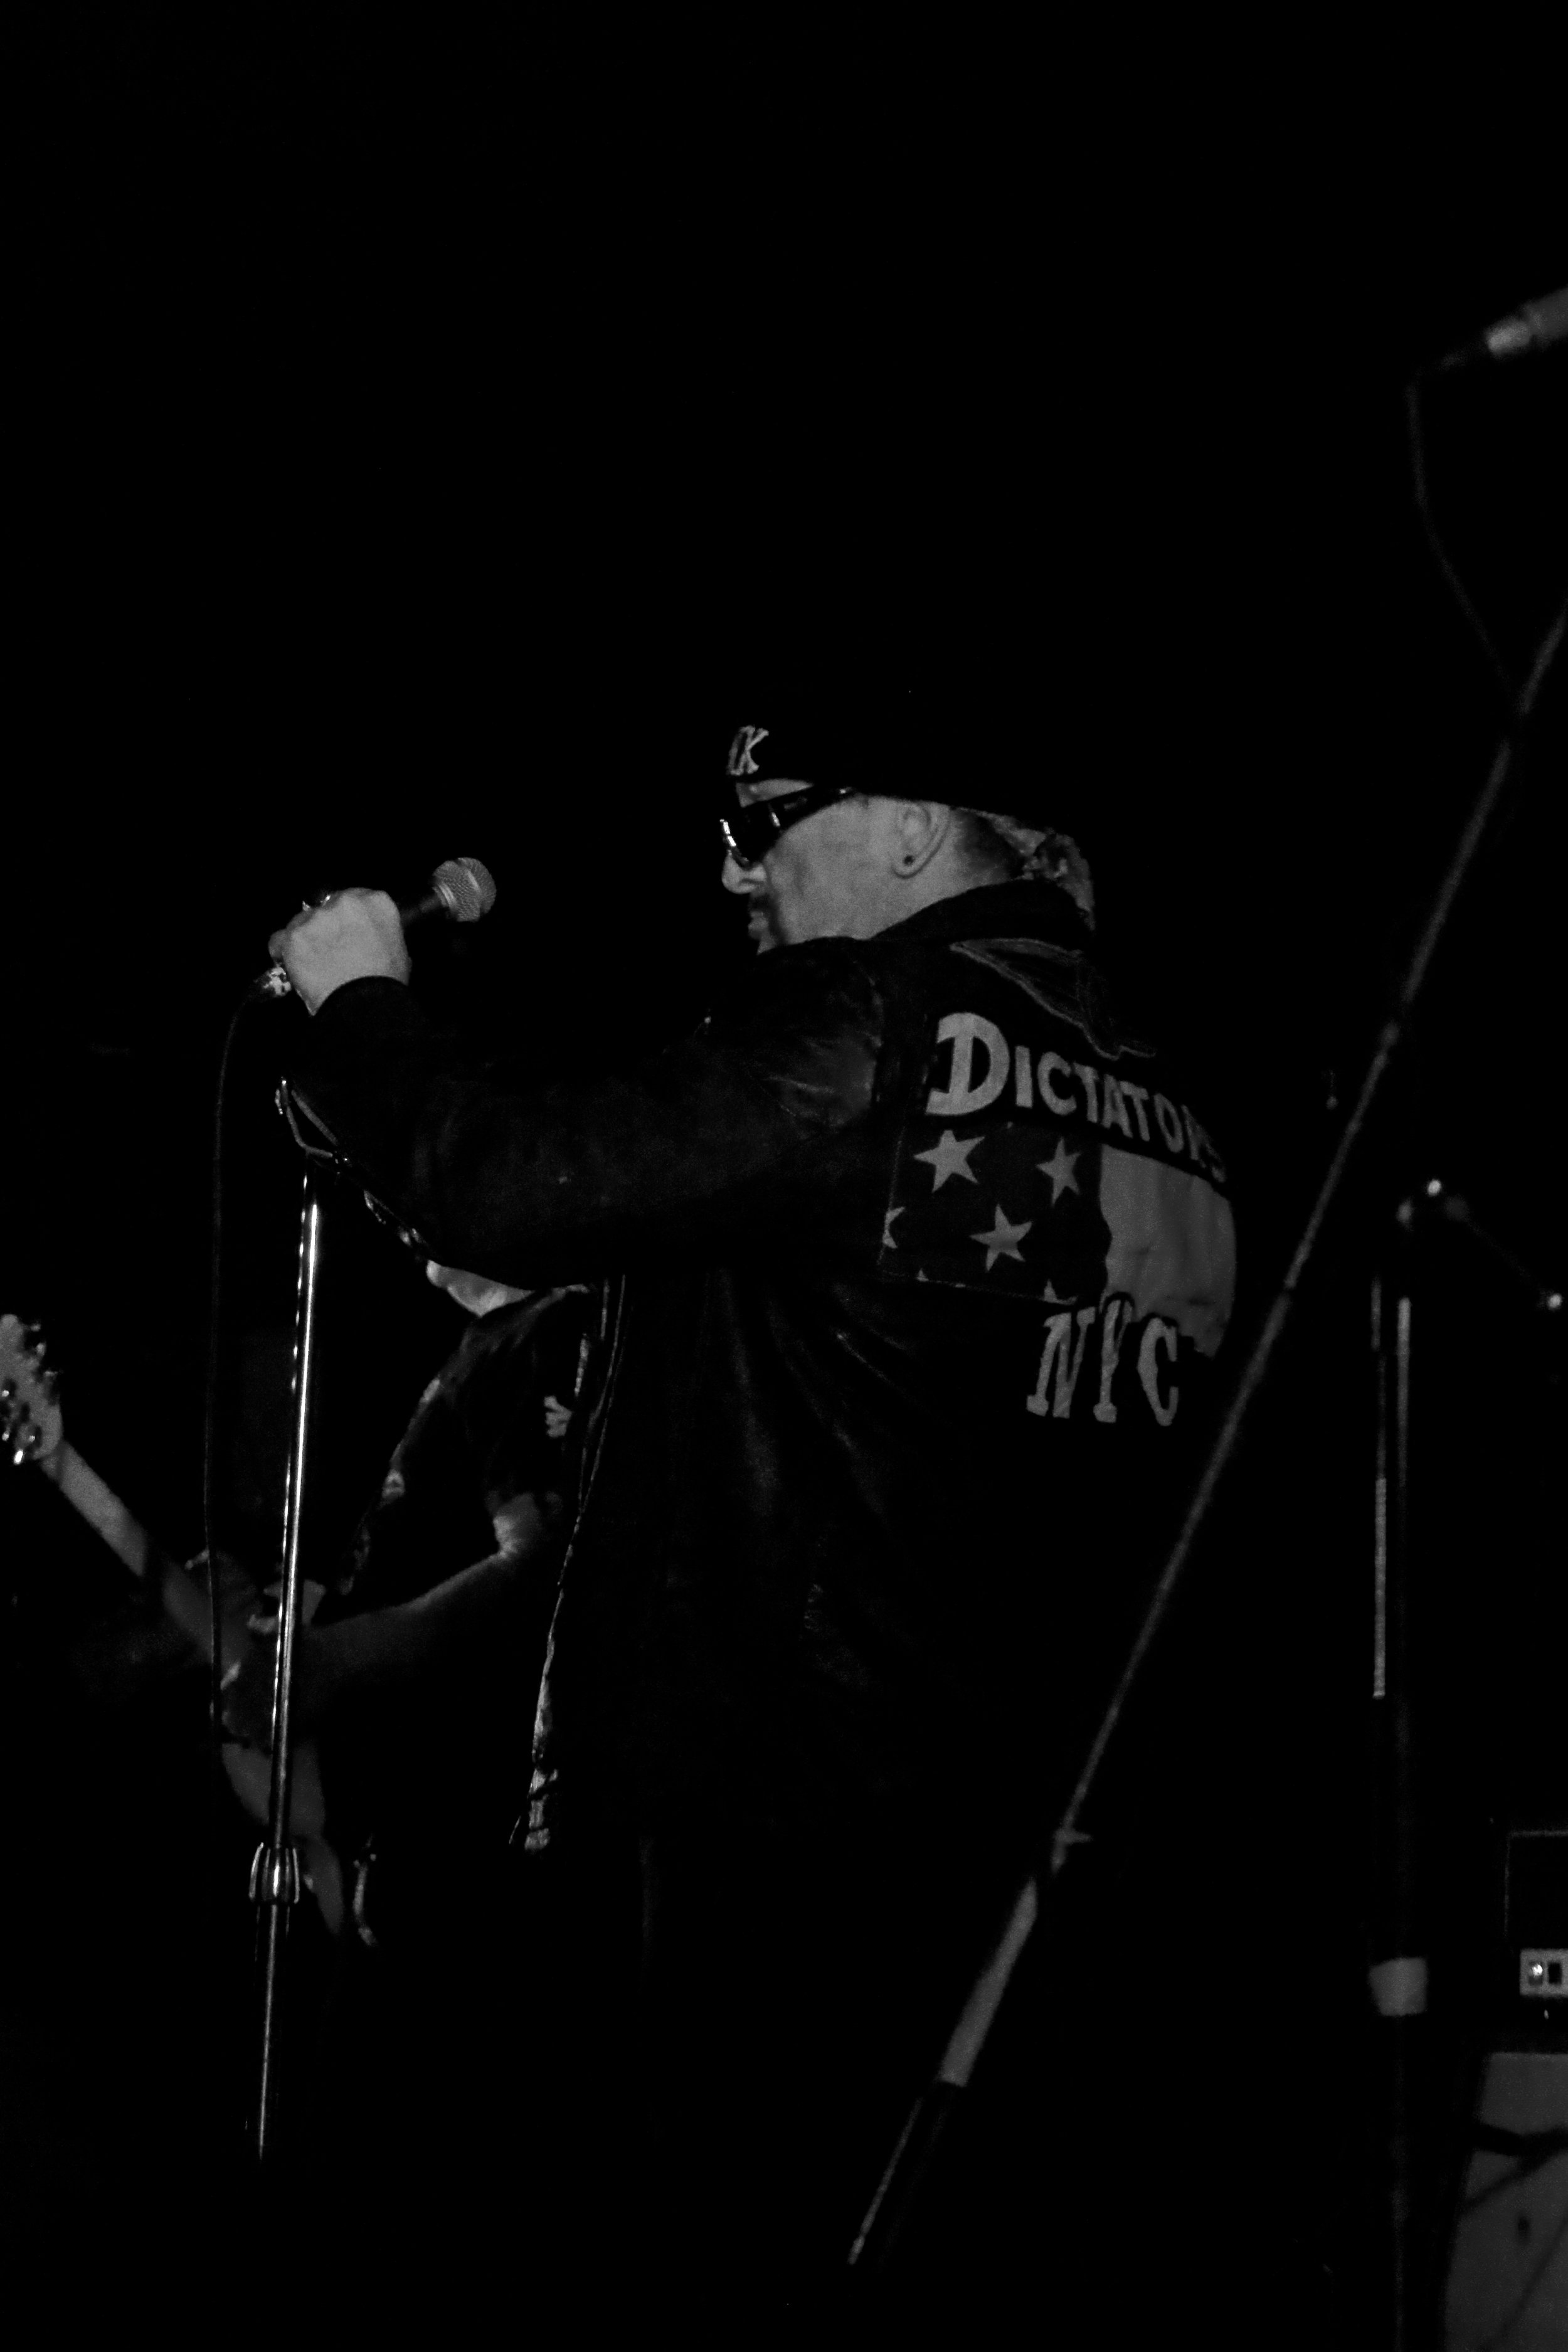 The Dictators NYC.Red 7, Austin, TX. 2014.